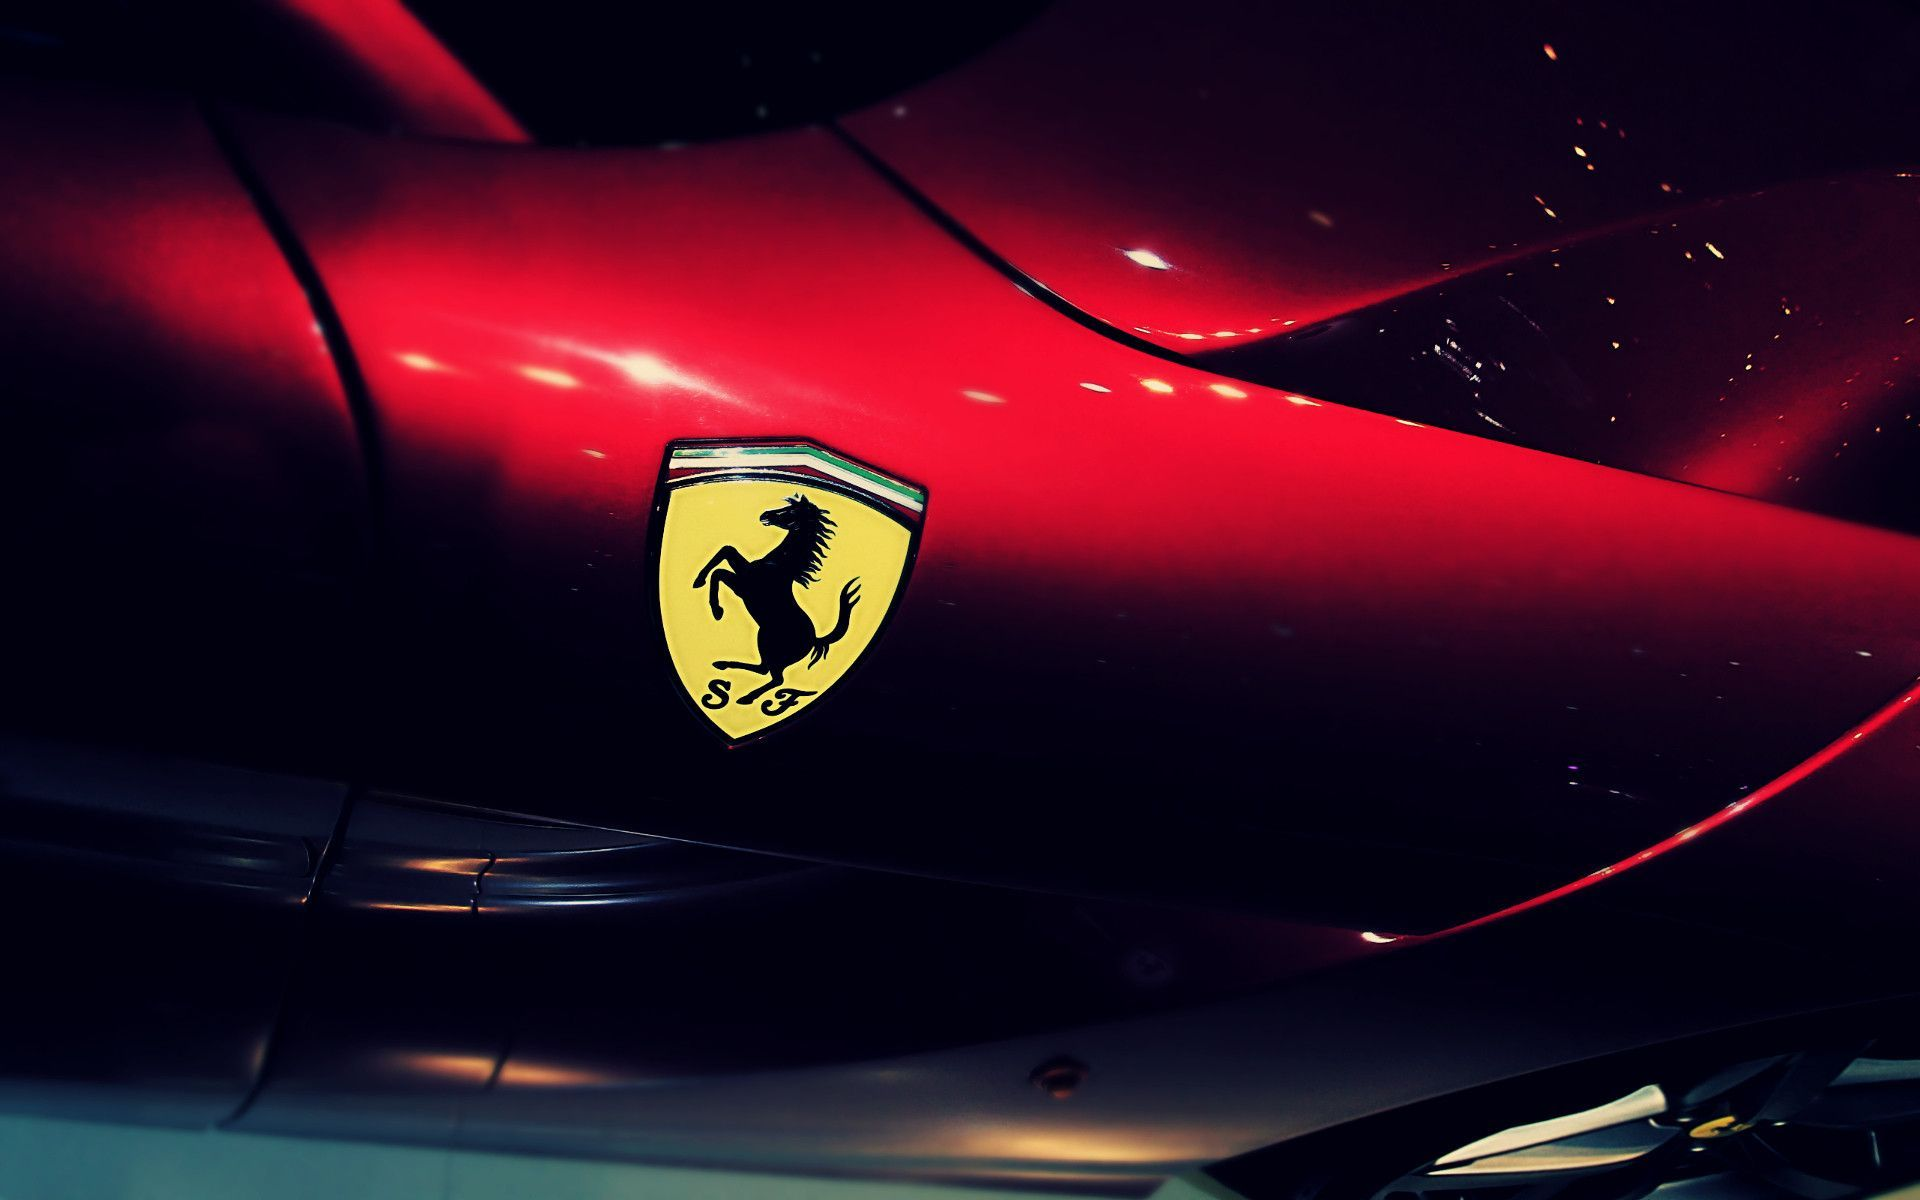 ferrari wallpapers full hd cars pinterest cars ferrari logo rh pinterest com